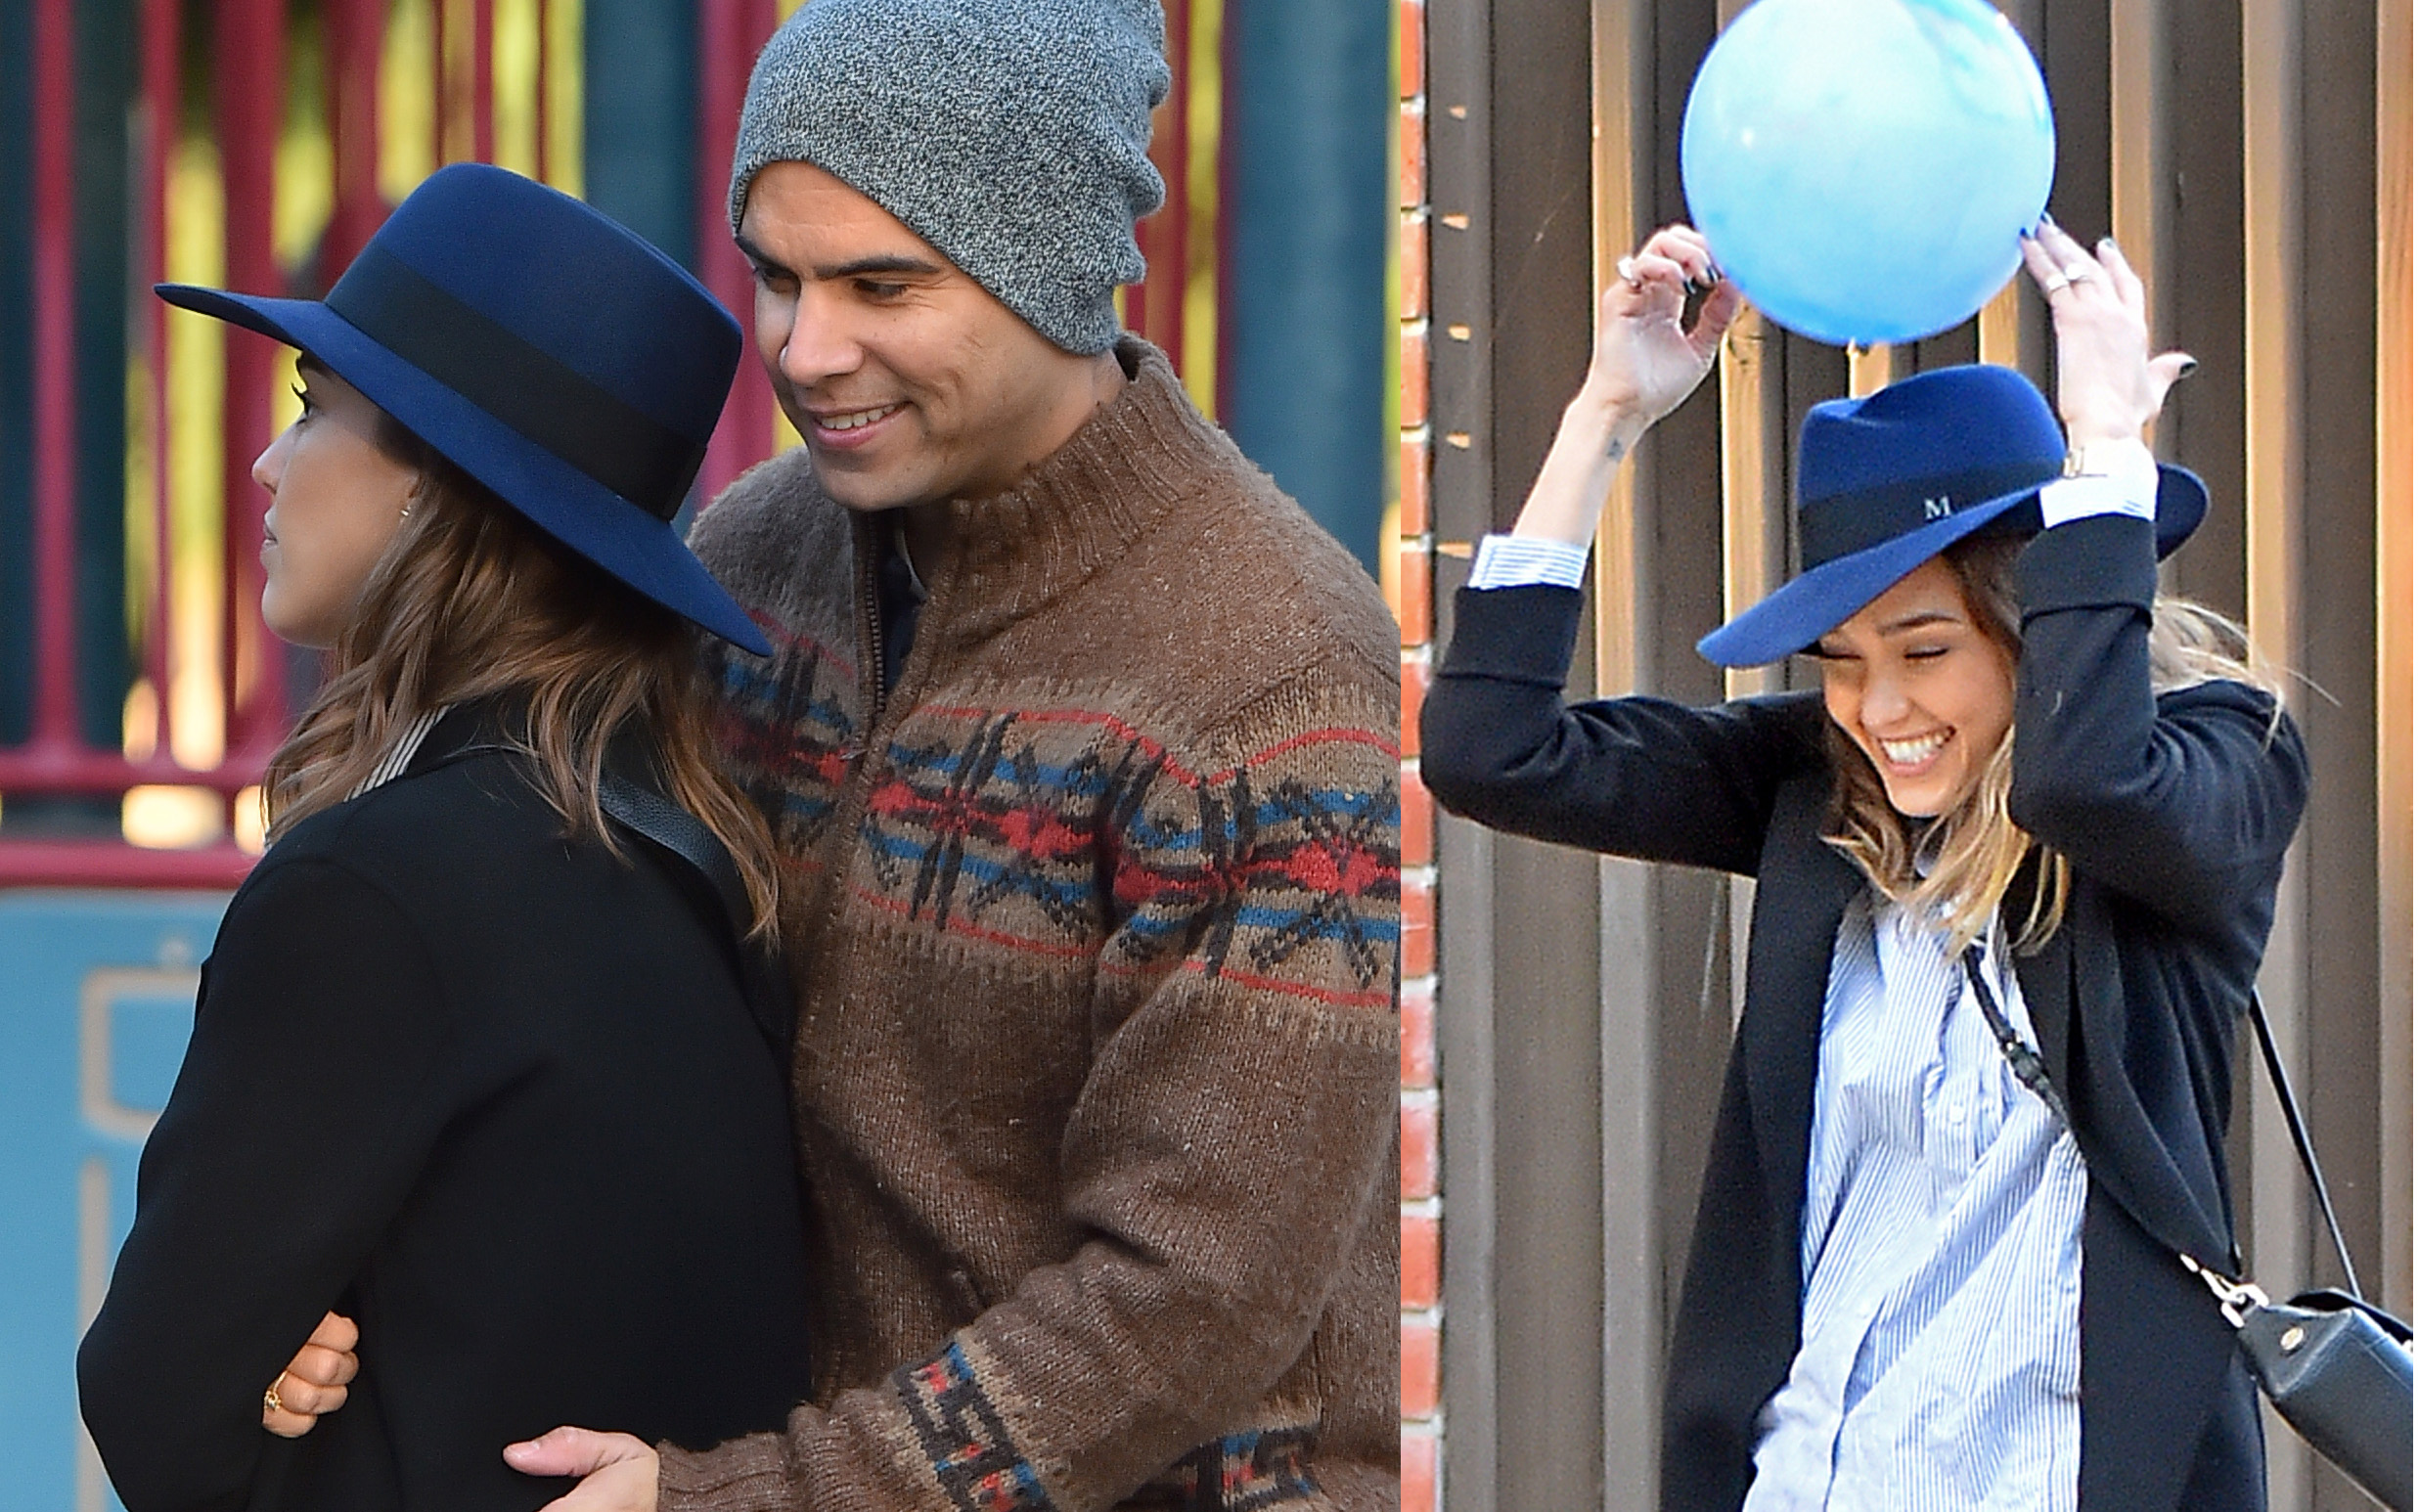 EXCLUSIVE: Jessica Alba gets bumped in the head with a ball while paying catch with her husband in Beverly Hills